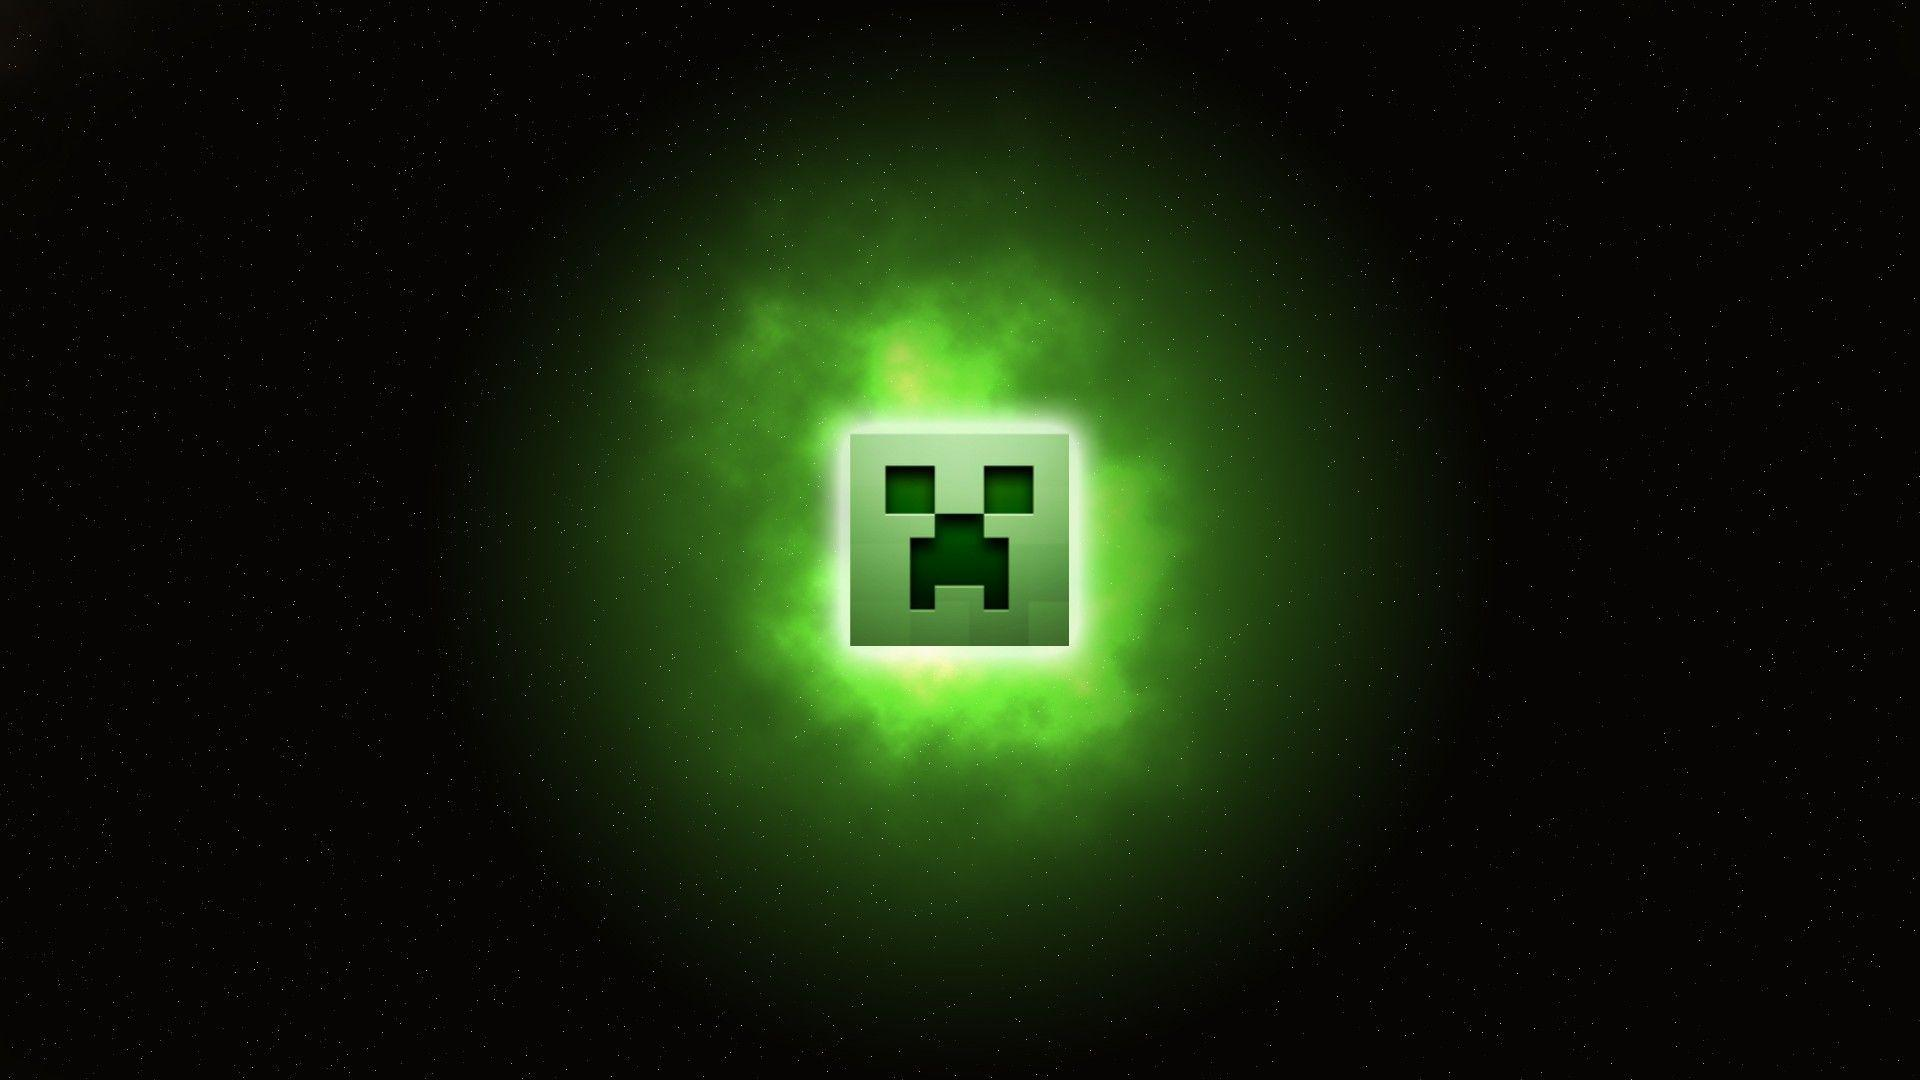 Download Creeper Minecraft Hd Wallpapers Wallpoper | Just Wallpapers